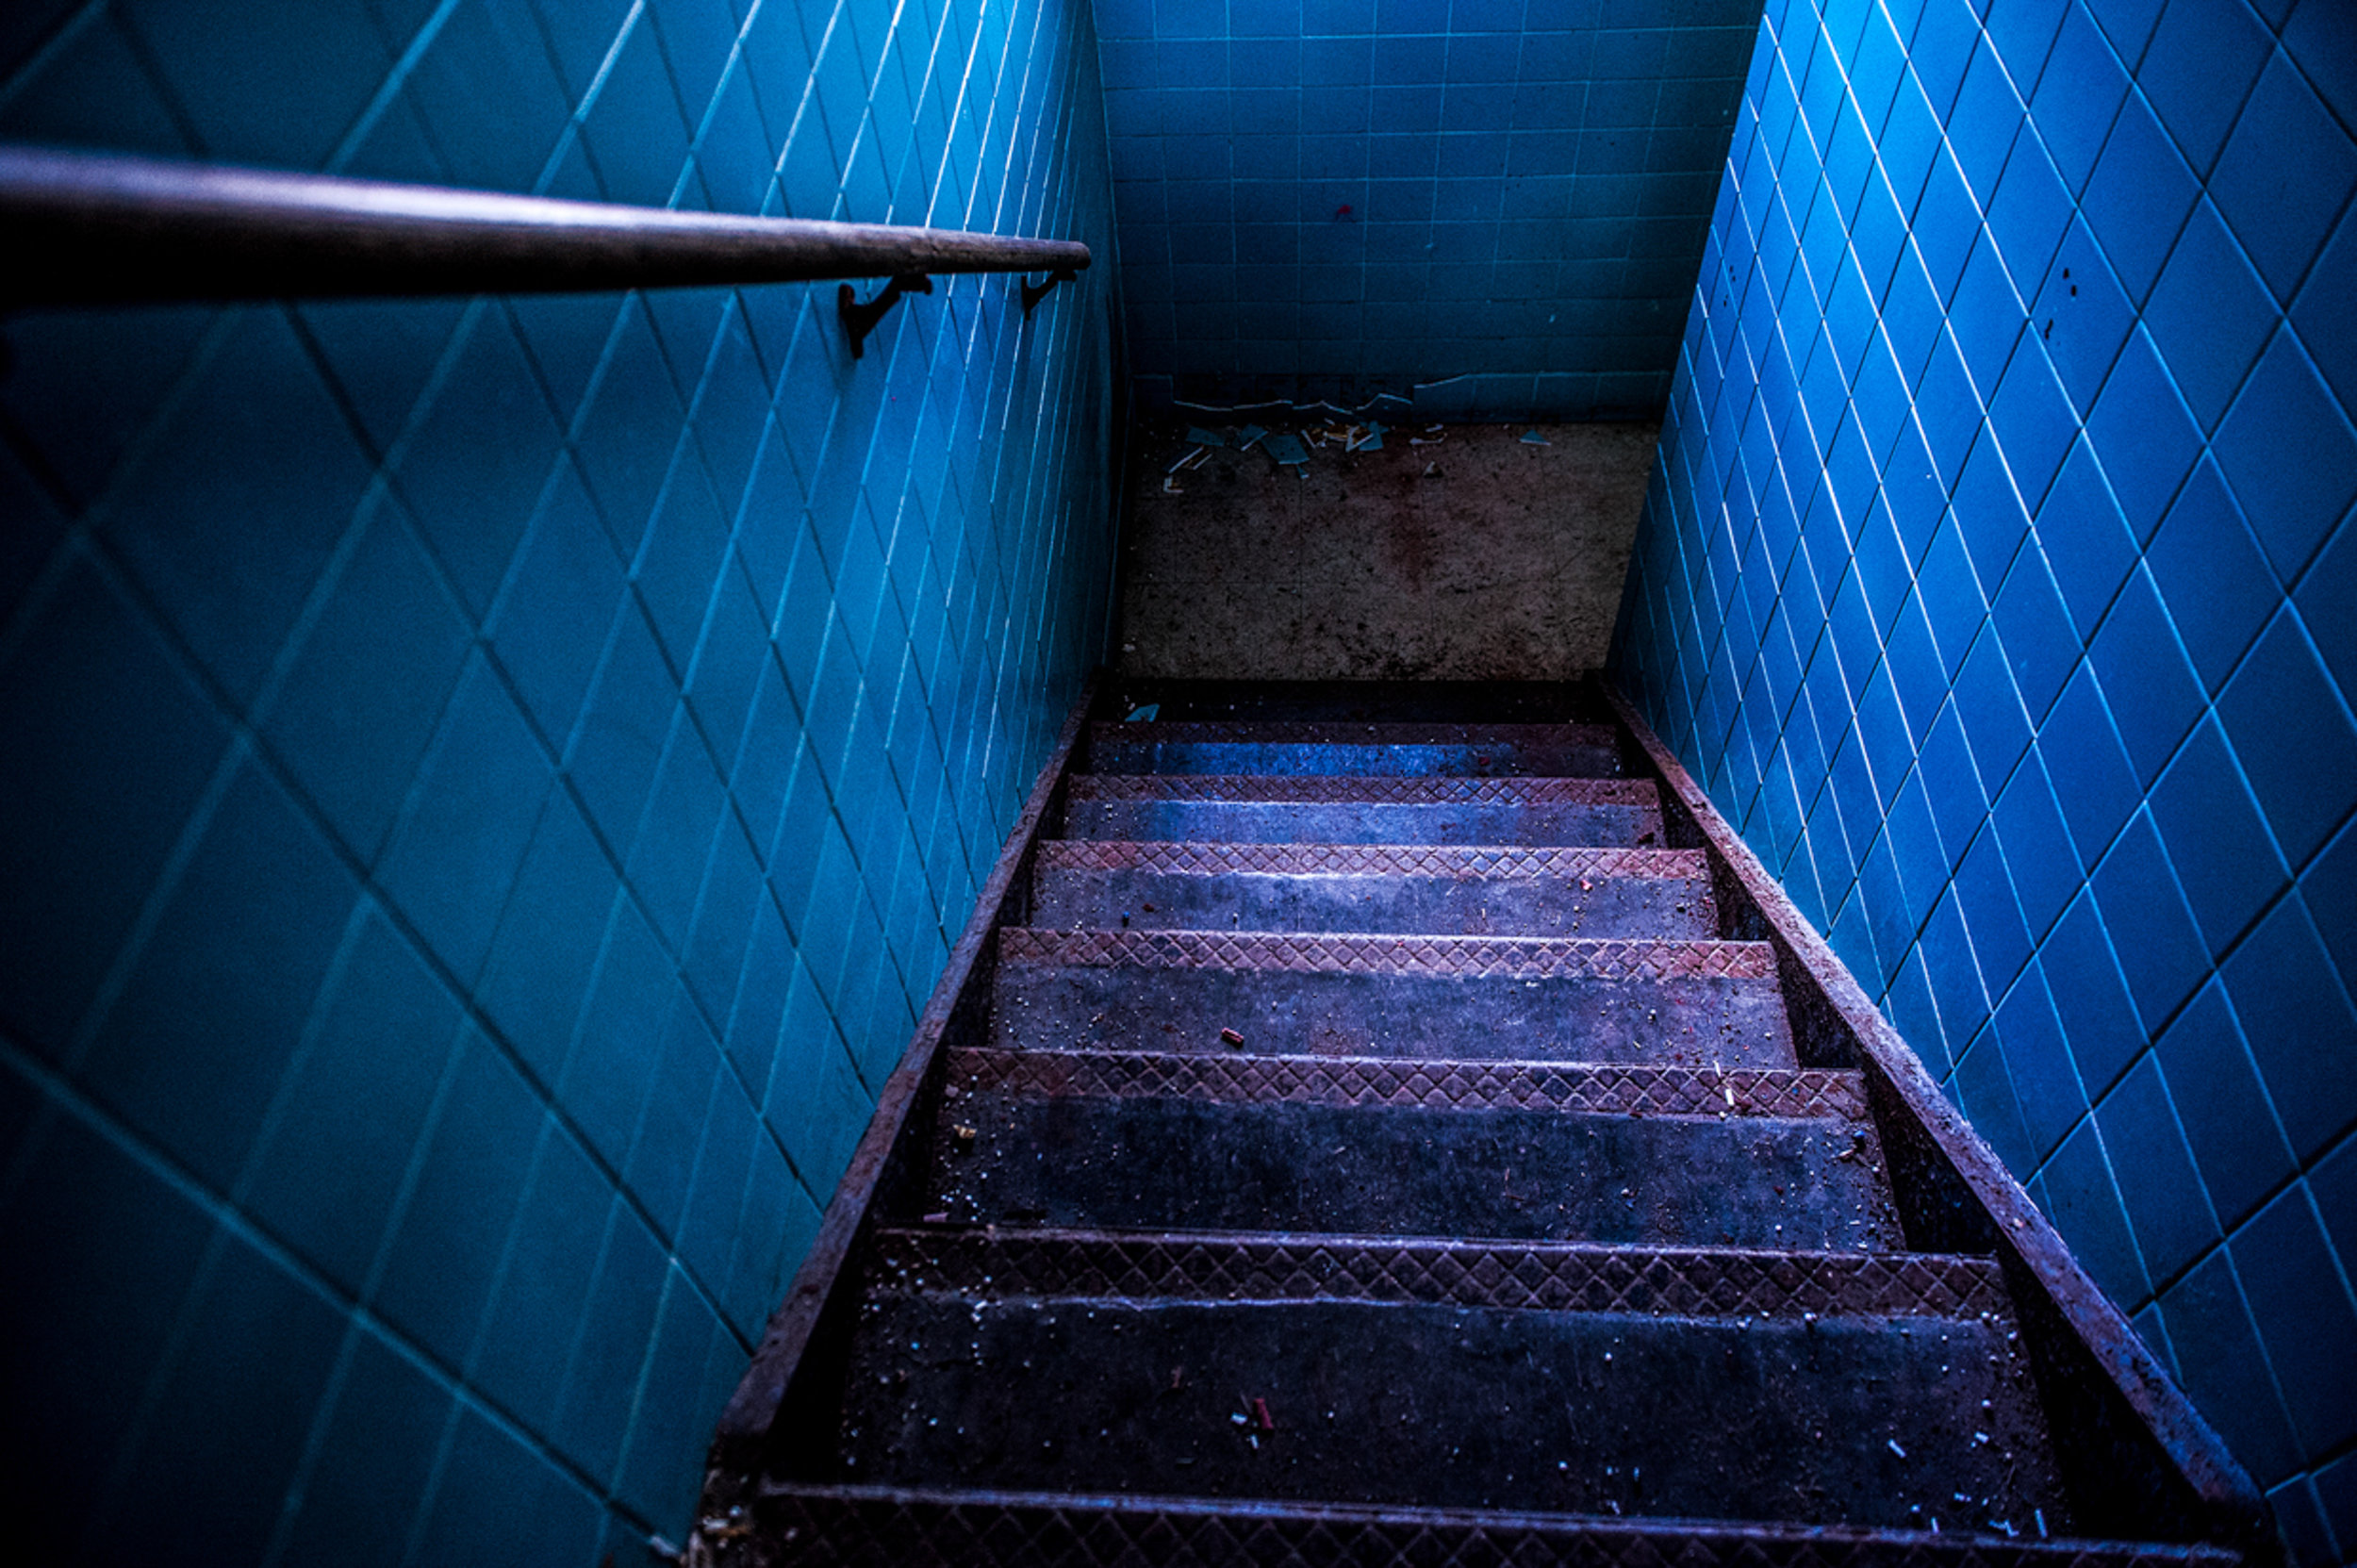 Blue stairs, oppressively soundless, save the blistered  clatter of young girls walking lockstep.